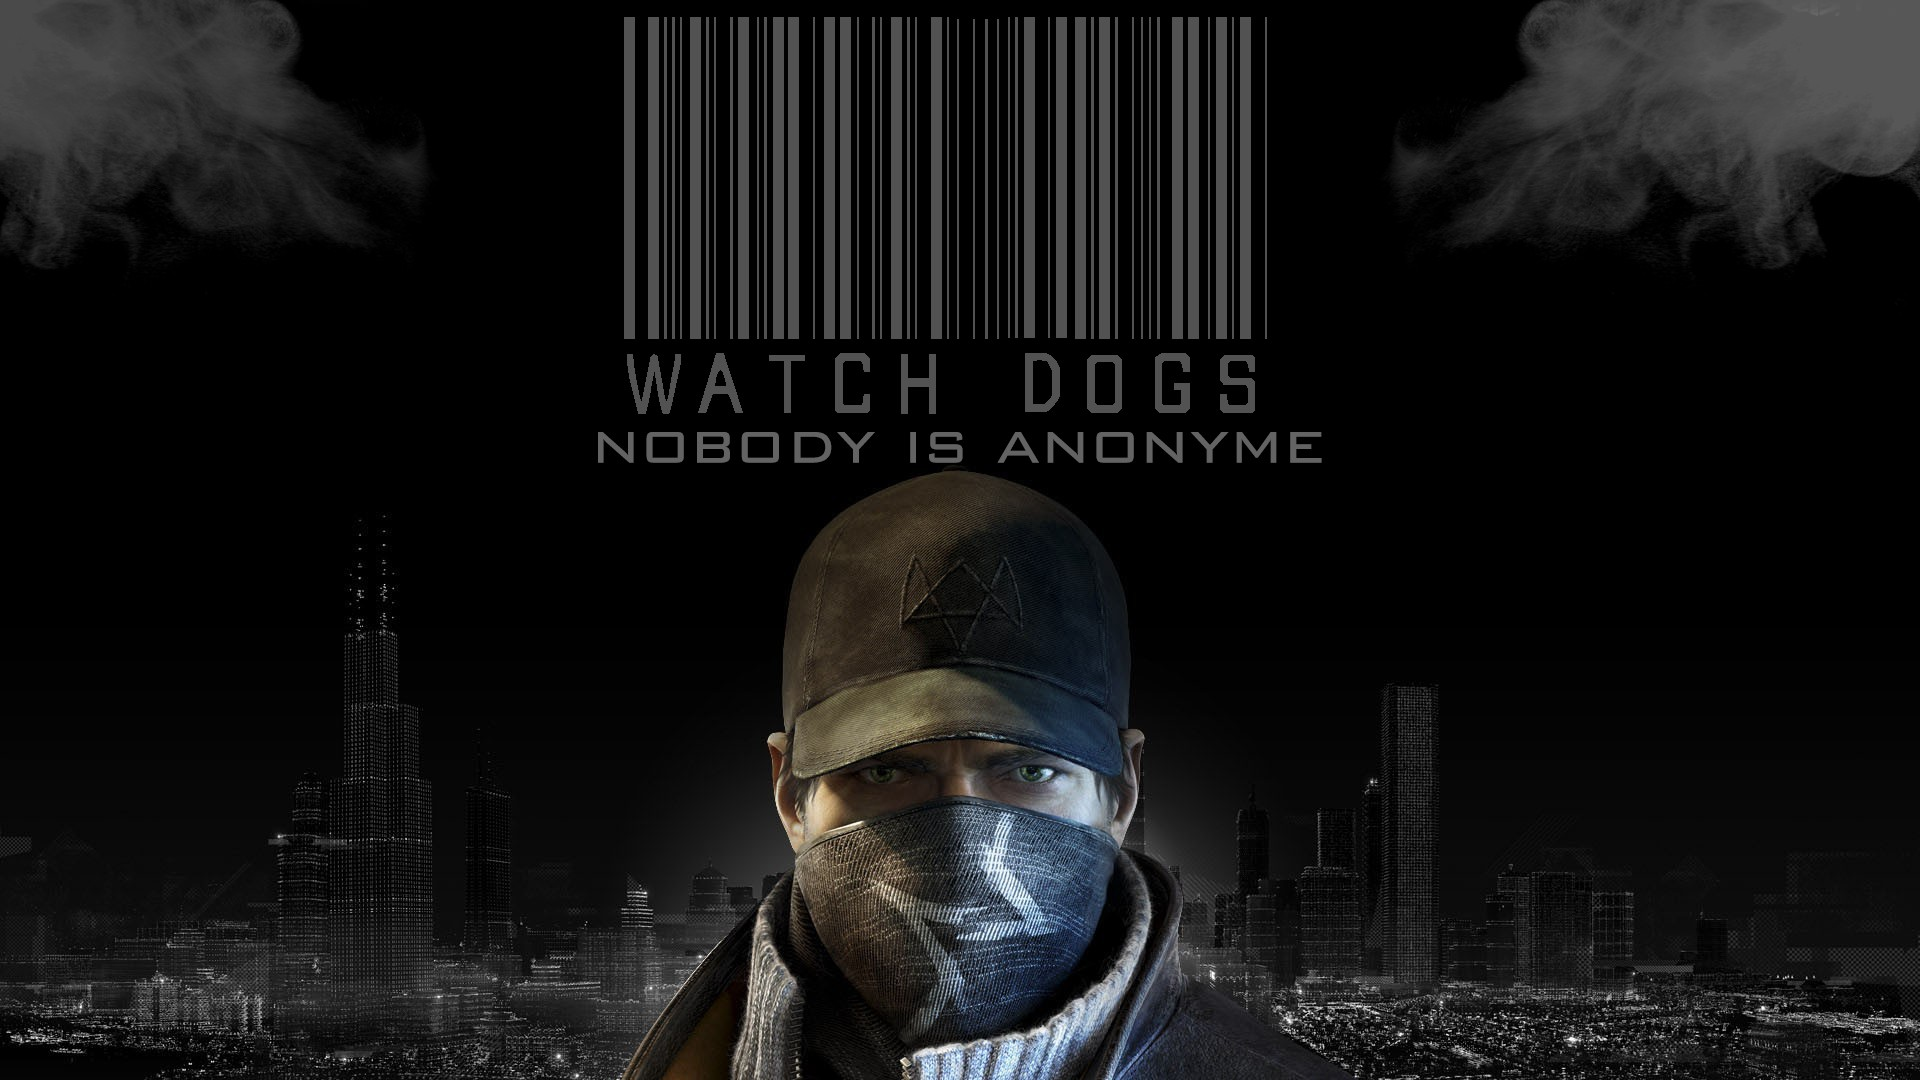 126 watch dogs hd wallpapers background images wallpaper abyss 126 watch dogs hd wallpapers background images wallpaper abyss page 3 voltagebd Images